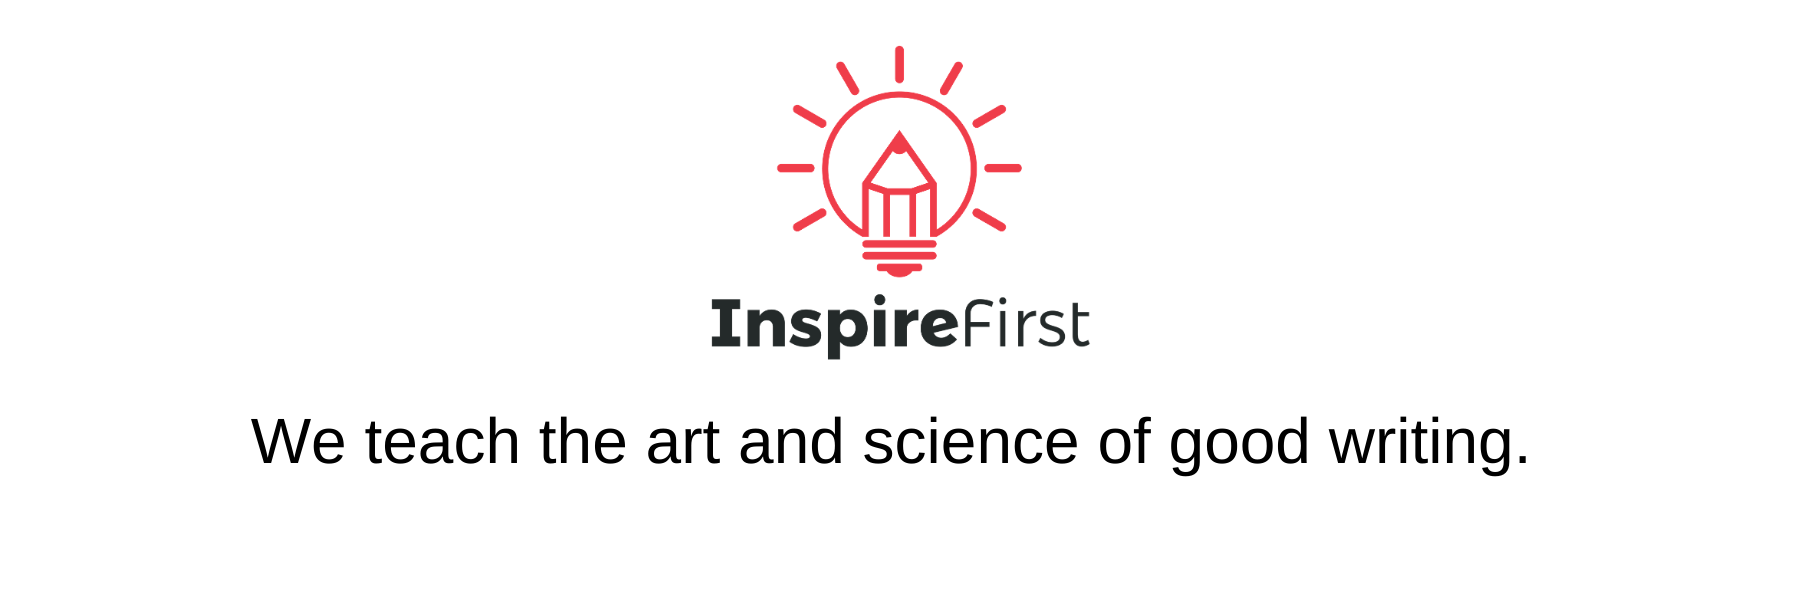 InspireFirst: Teaching You How to Be a Better Writer